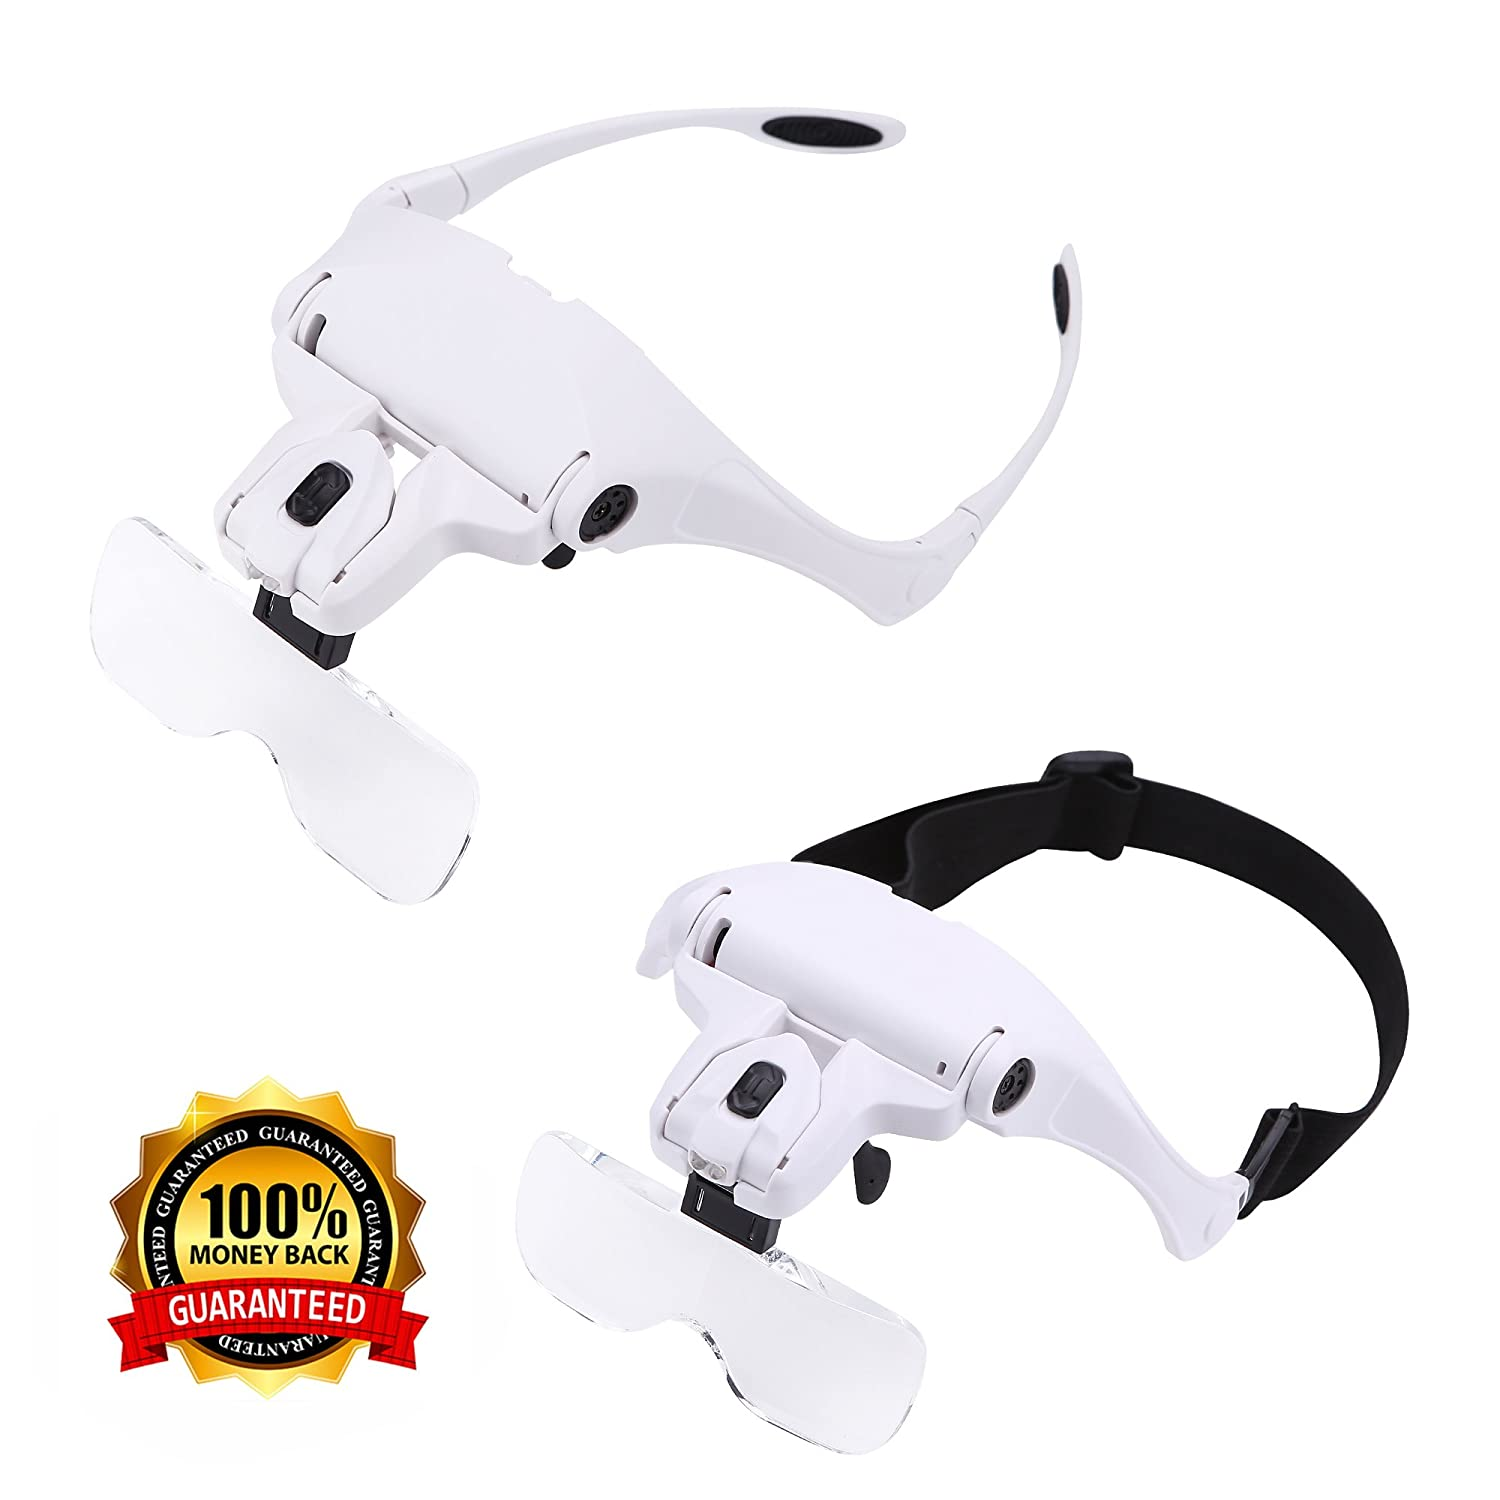 Headband Mount Magnifier Led Illuminated Head Magnifying Printed Circuit Board China Gua Glass Jewelers Loupe Light Bracket Interchangeable 5 Replaceable